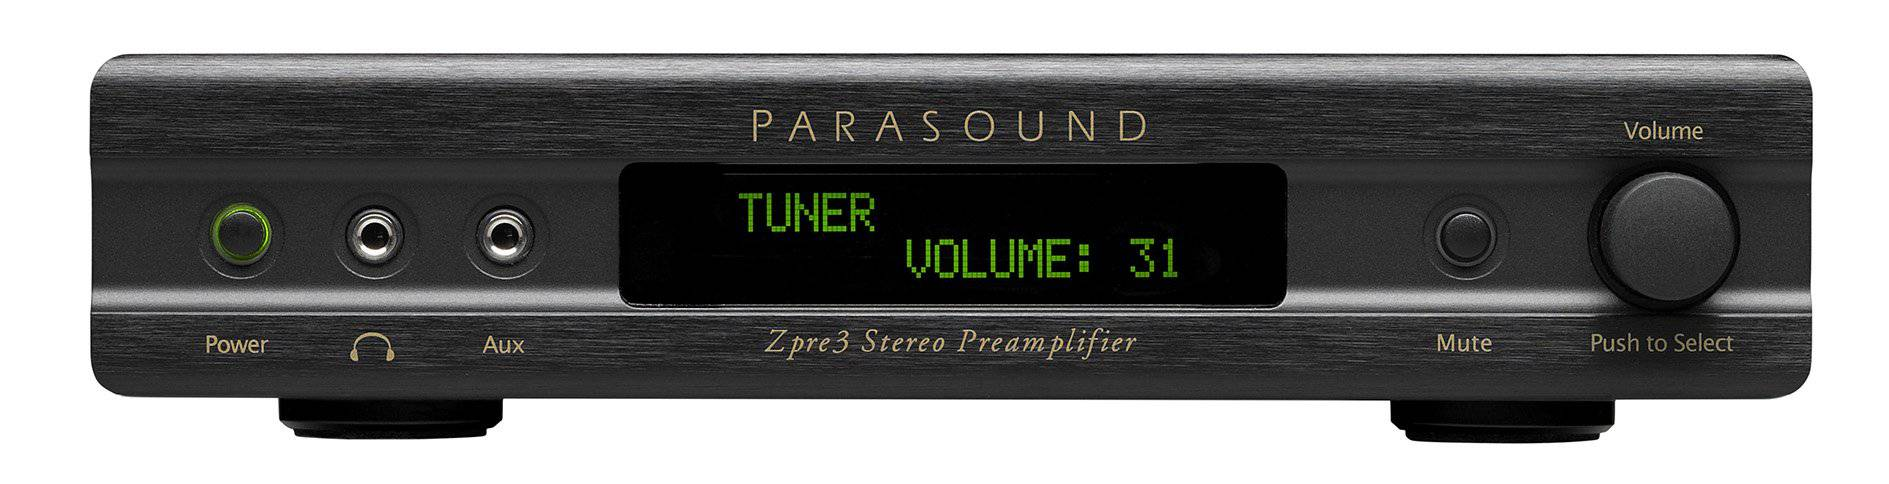 Parasound Zpre3 - Stereo Preamplifier - The Audio Company